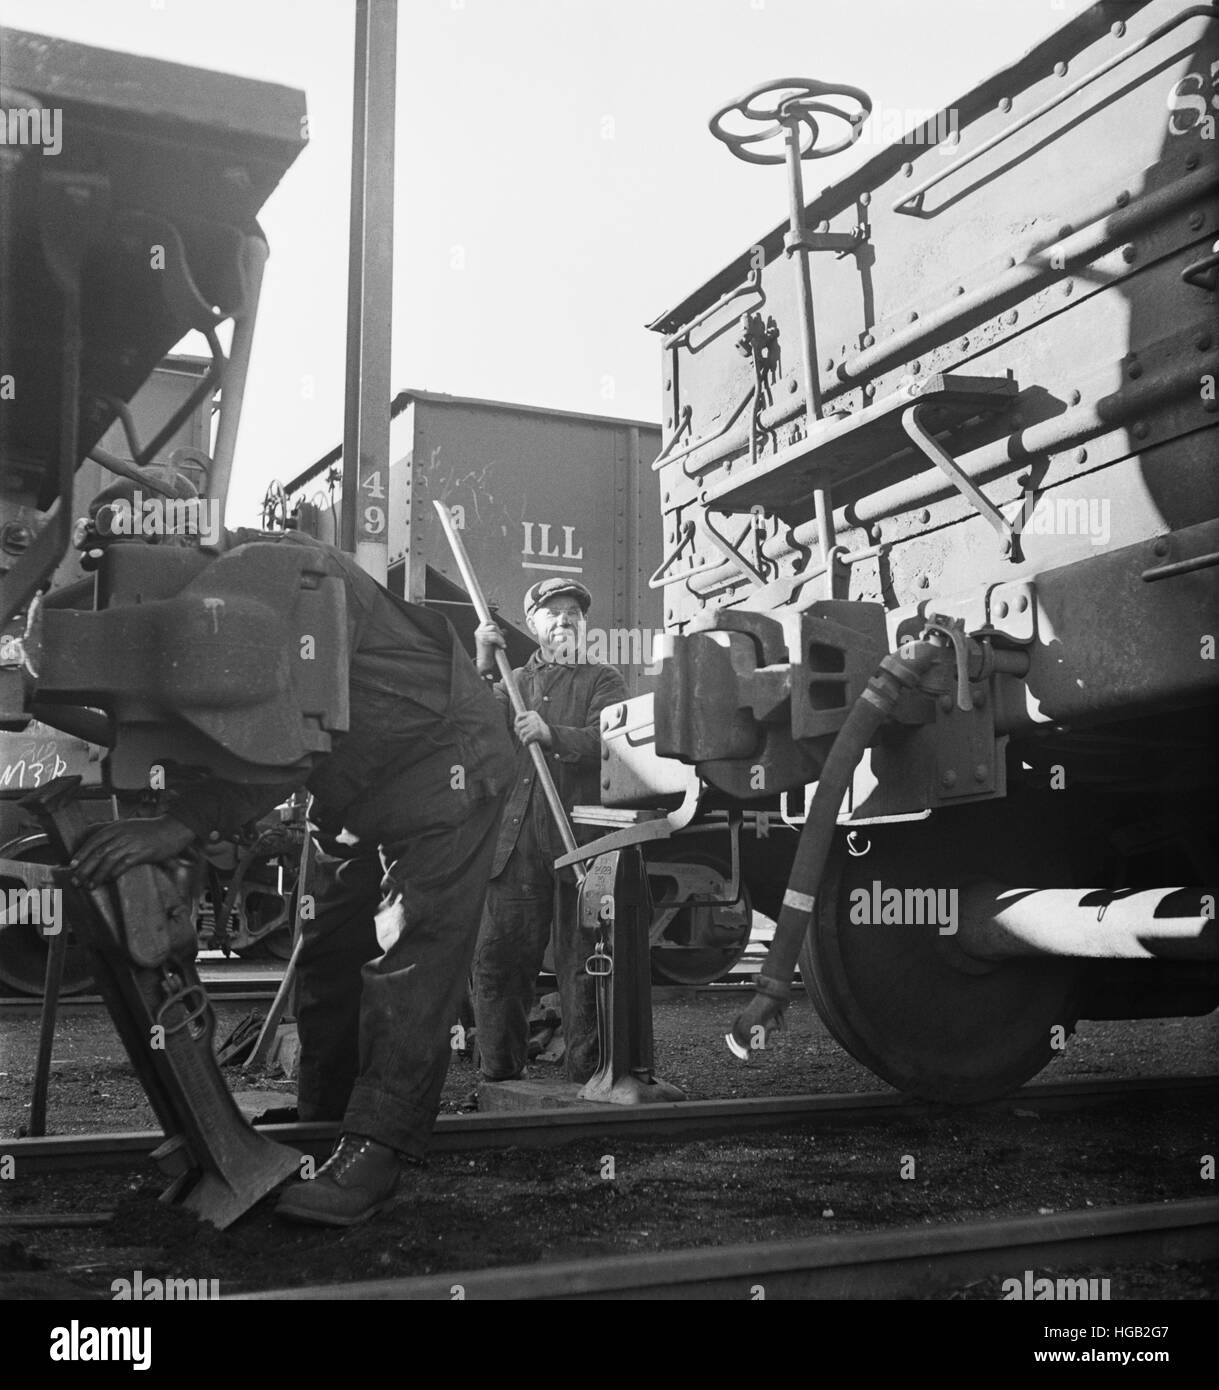 Jacking up a car on the repair tracks at an Illinois Central Railroad yard, 1942. - Stock Image